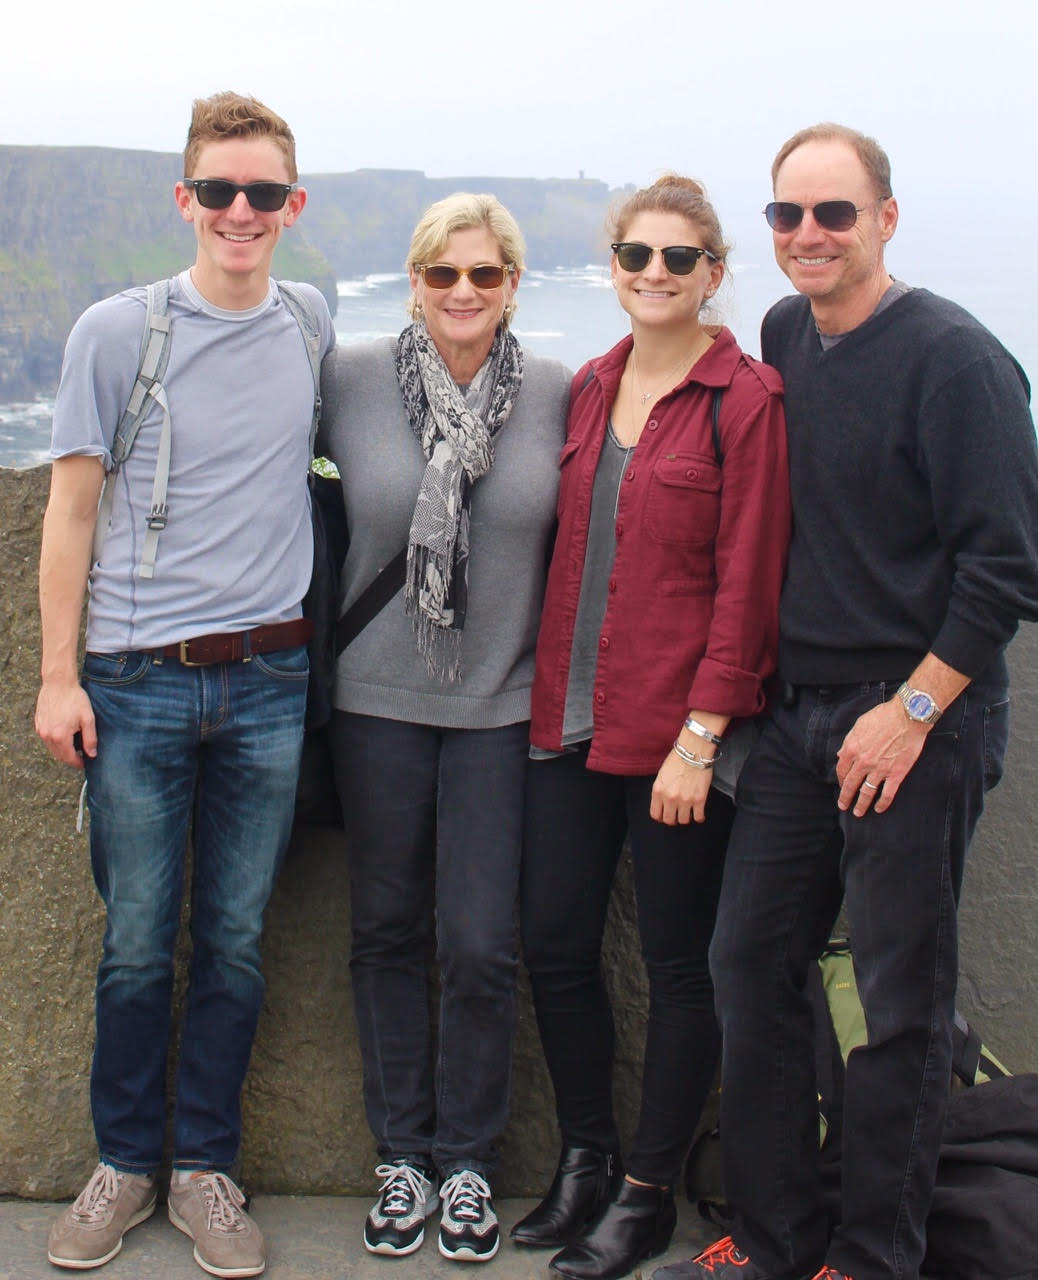 The family at the Cliffs of Moher